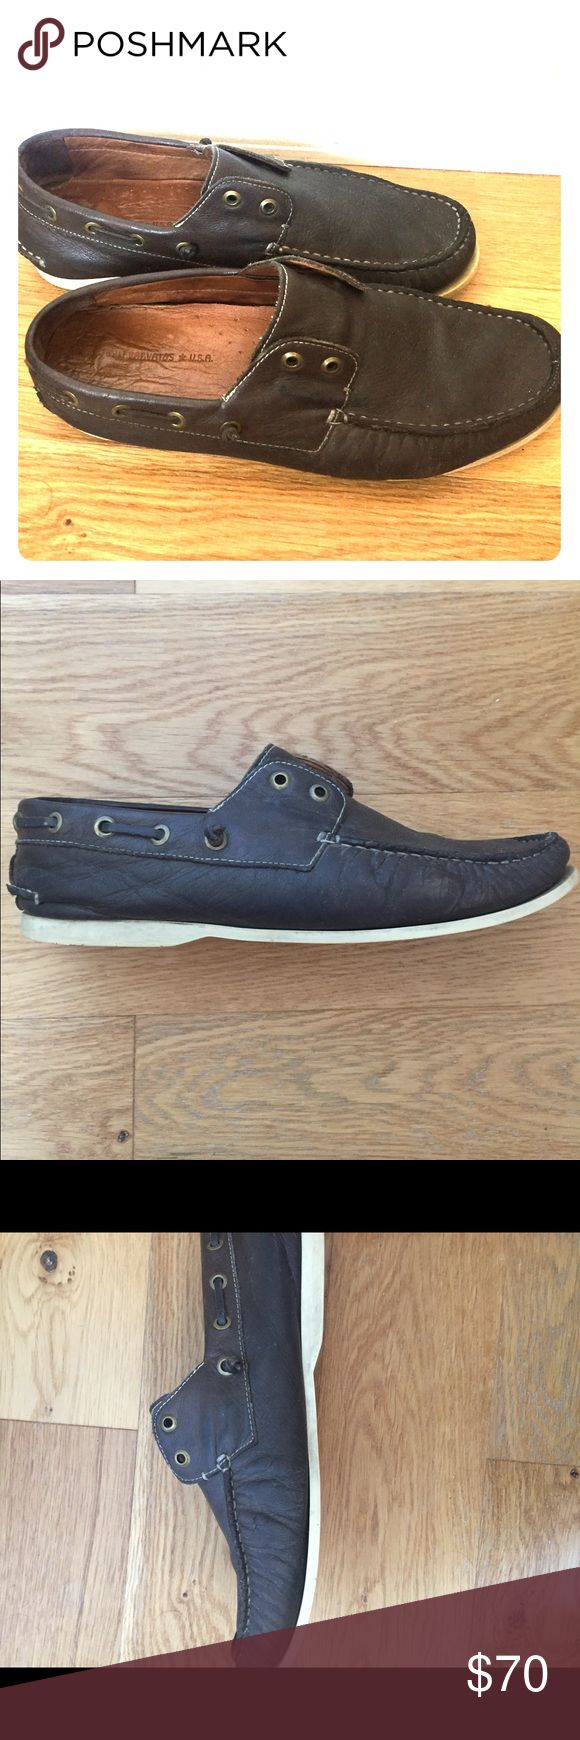 John Varvatos Leather Boat Shoes Boat shoes from John Varvatos - about 2 years old but didn't really wear them that much so they're in solid condition. John Varvatos Shoes Boat Shoes